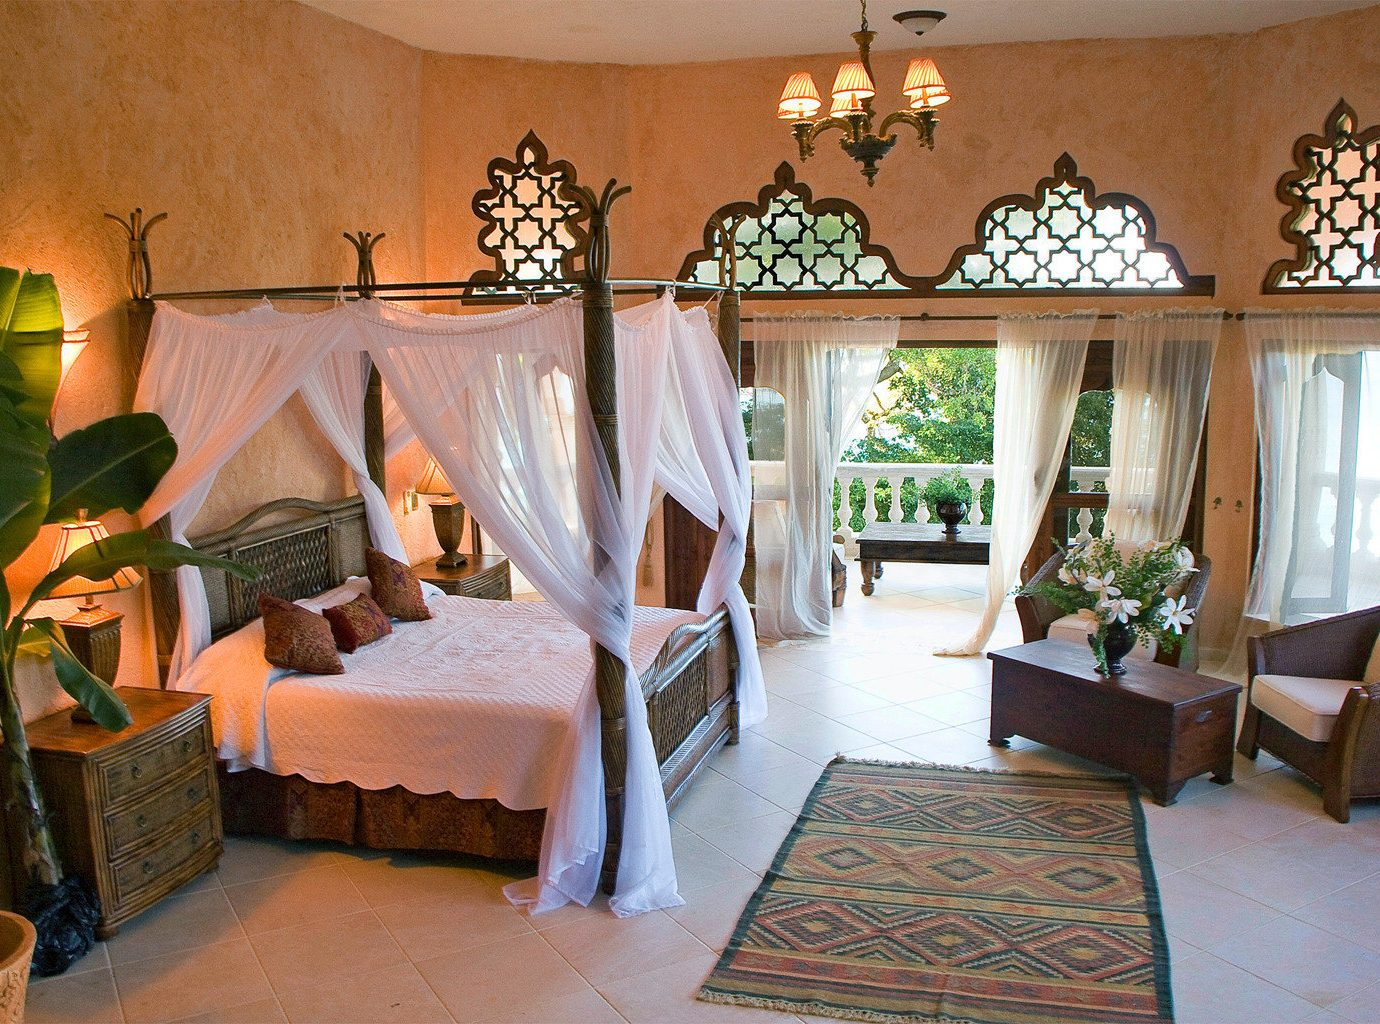 Bedroom Elegant Luxury Patio Rustic Scenic views Suite property living room house home Villa cottage Resort mansion hacienda